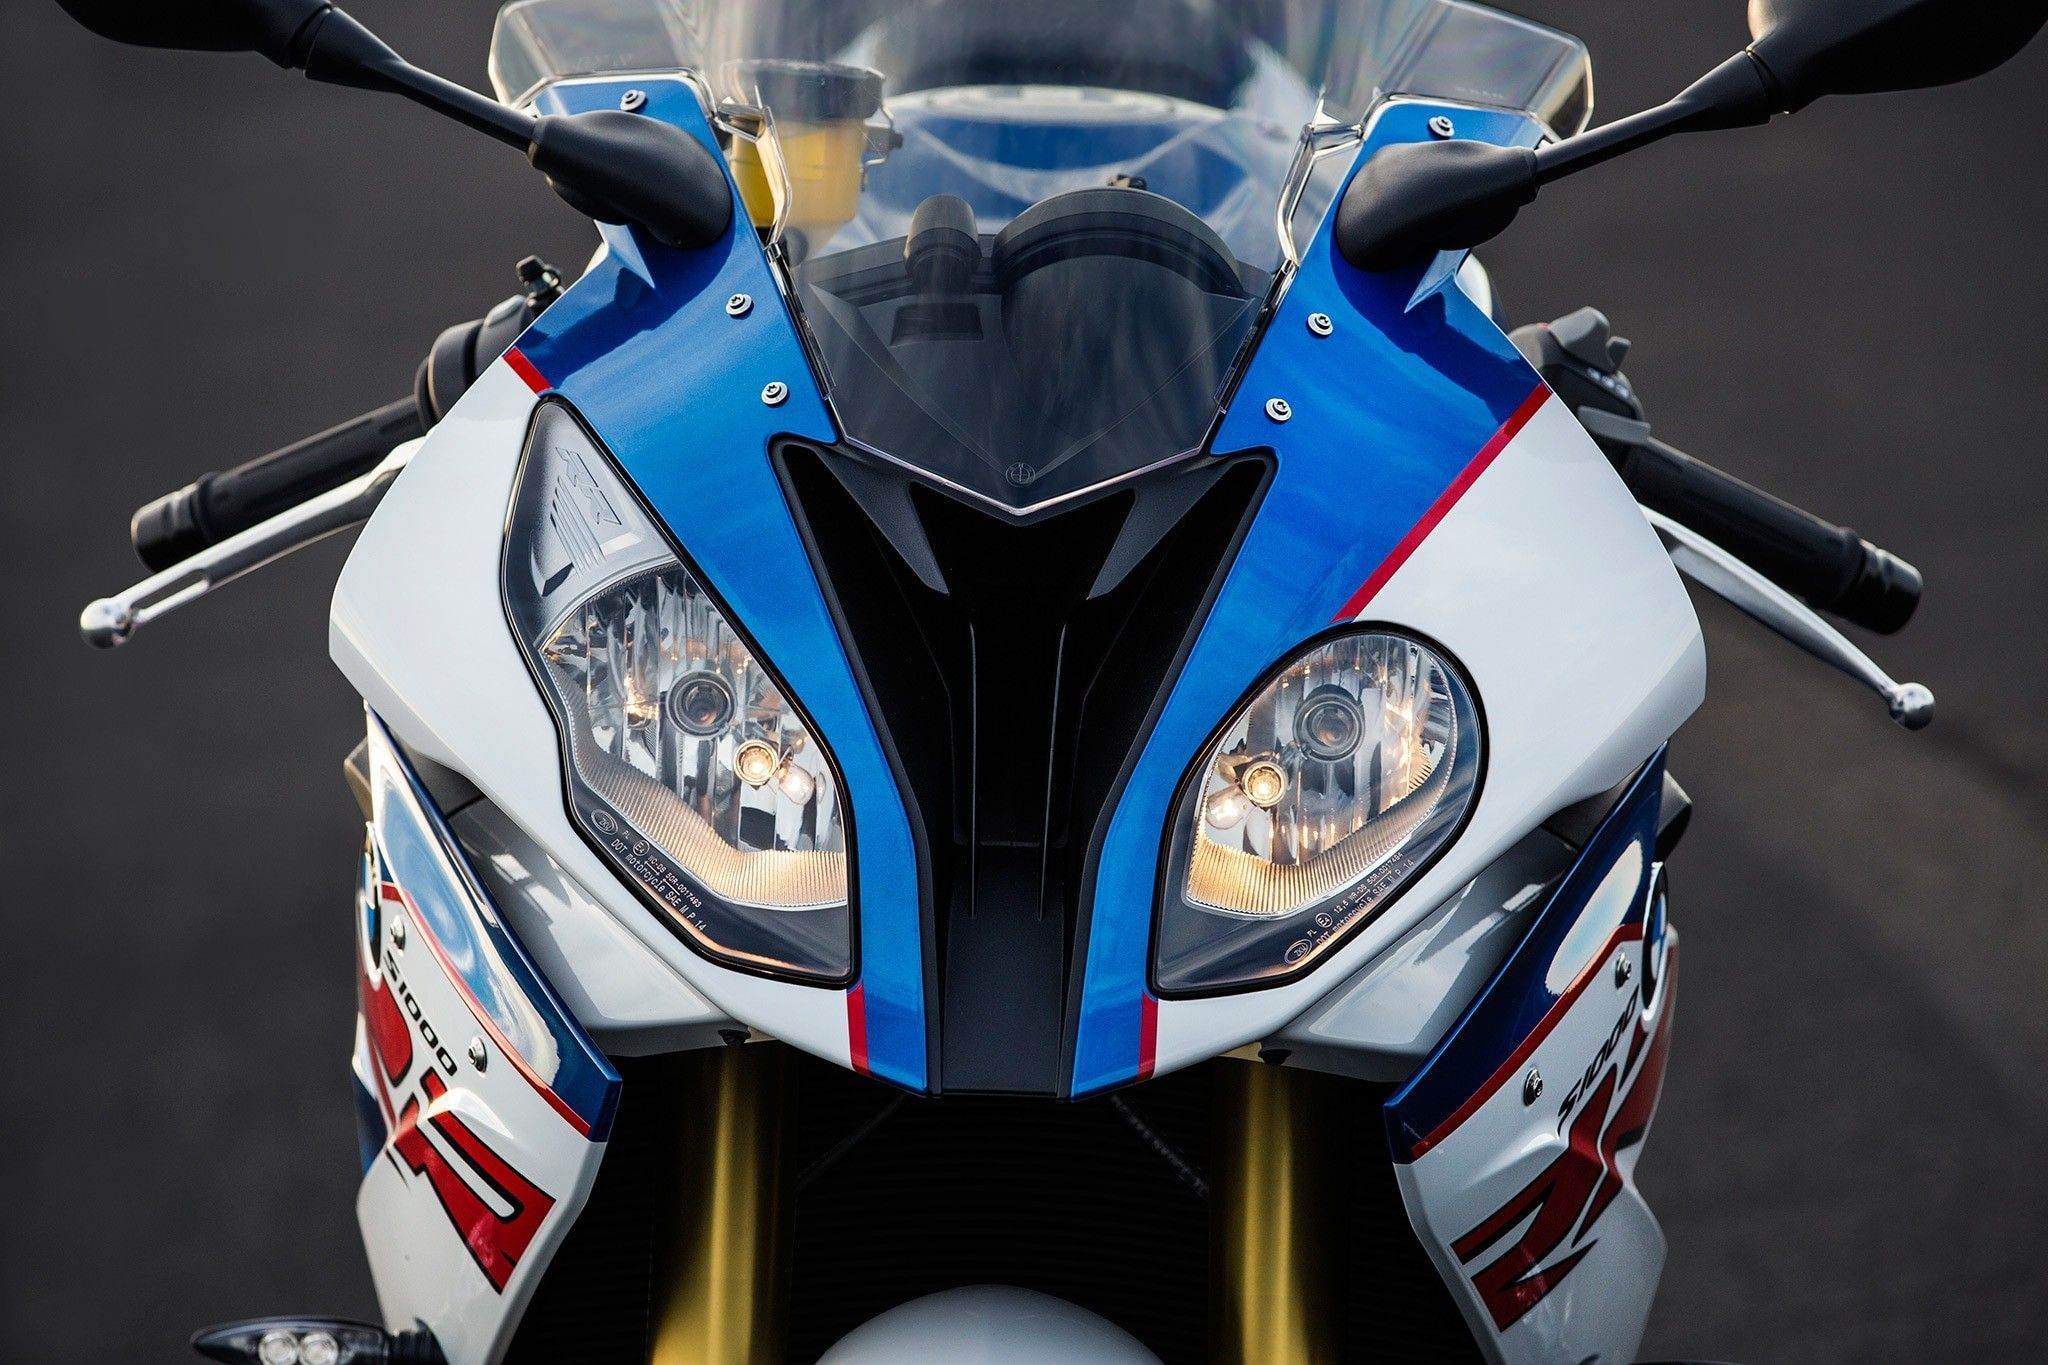 S1000rr Wallpapers Top Free S1000rr Backgrounds Wallpaperaccess